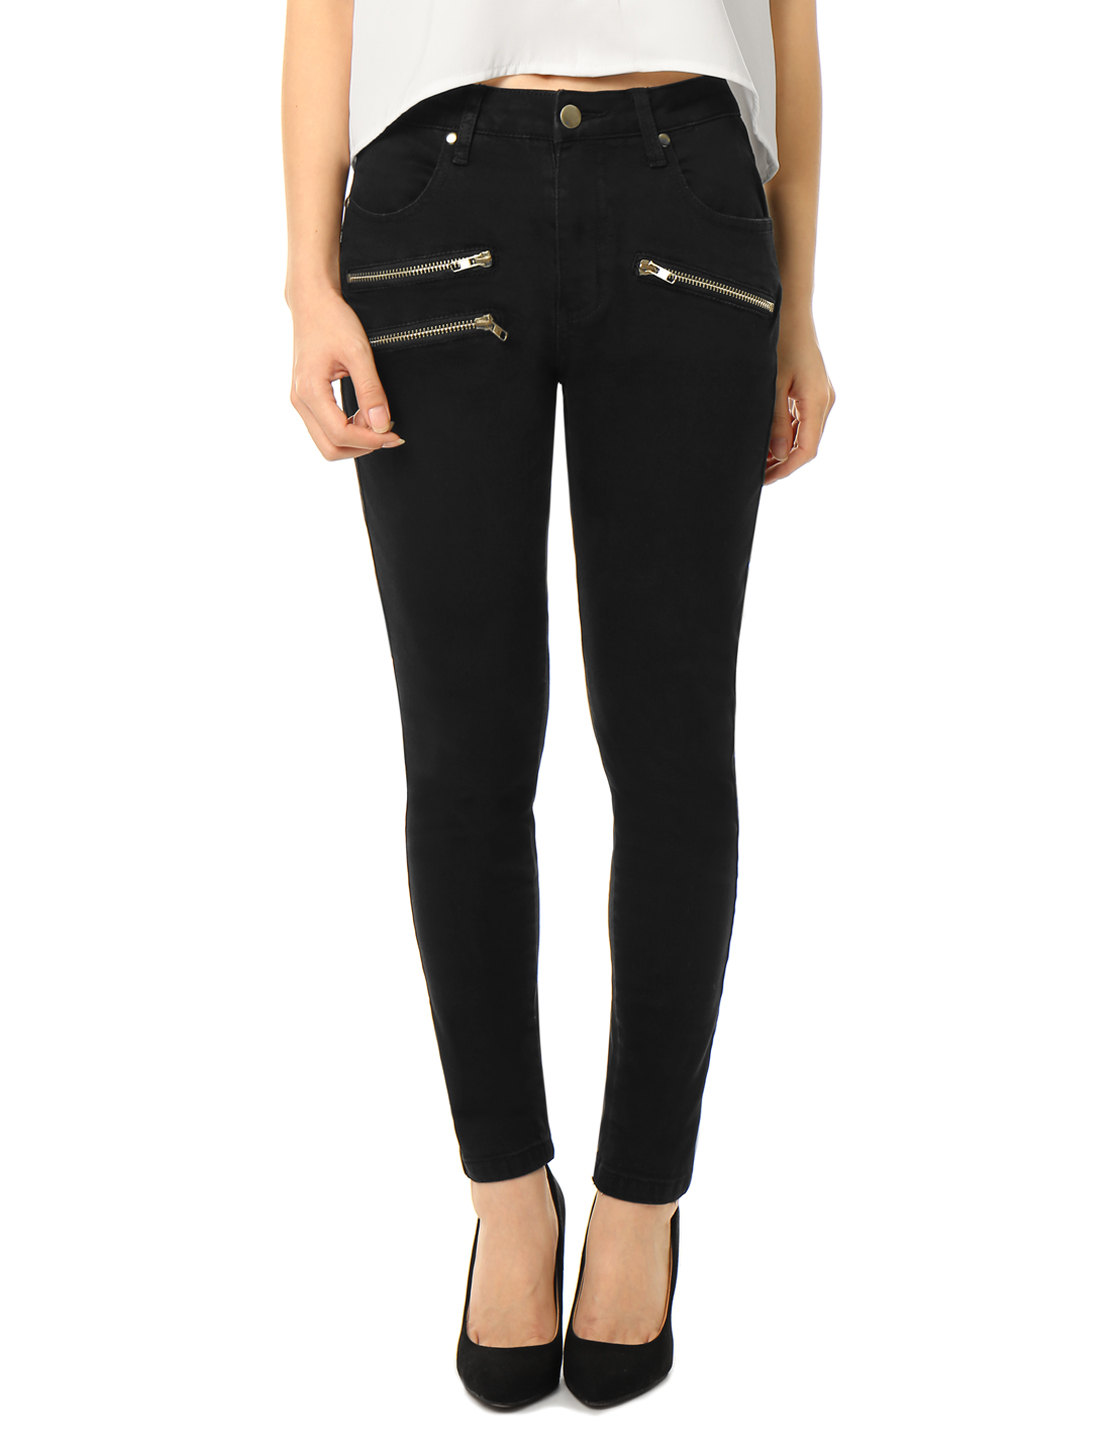 Women Mid Rise Zipper Decor Stretchy Skinny Jeans Black XS